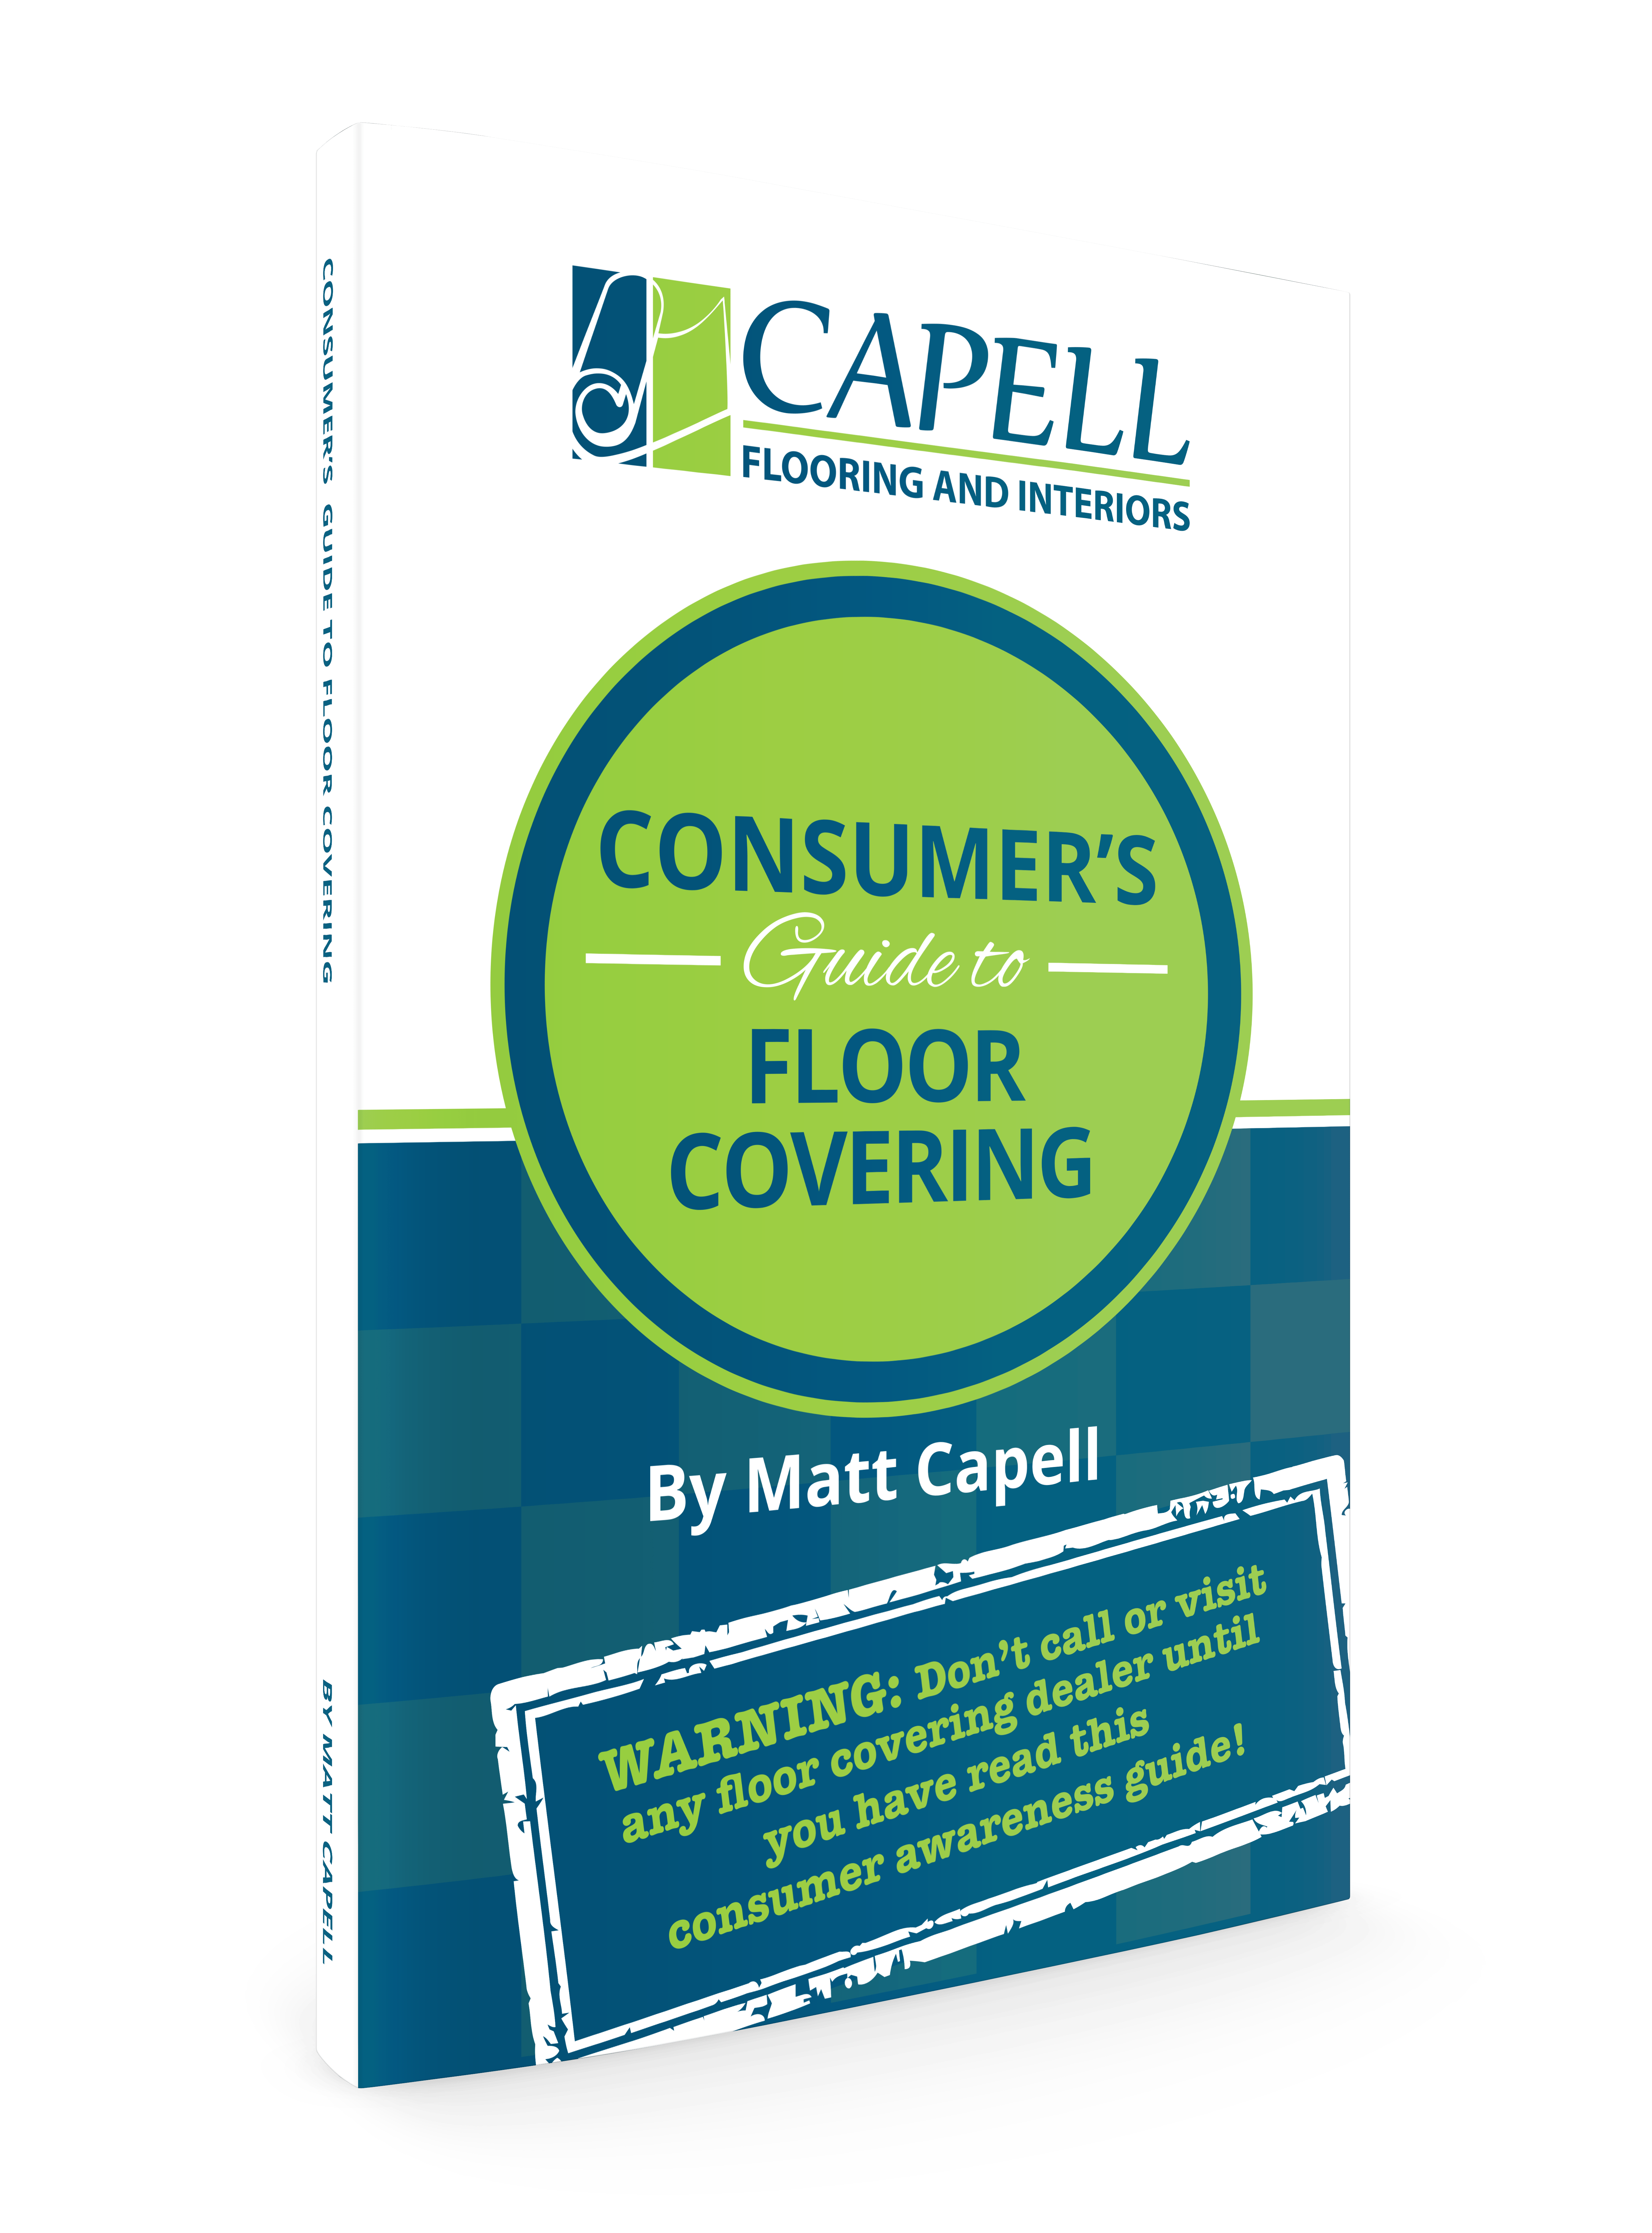 Capell Flooring and Interiors - Consumer's Guide to Flooring, Boise